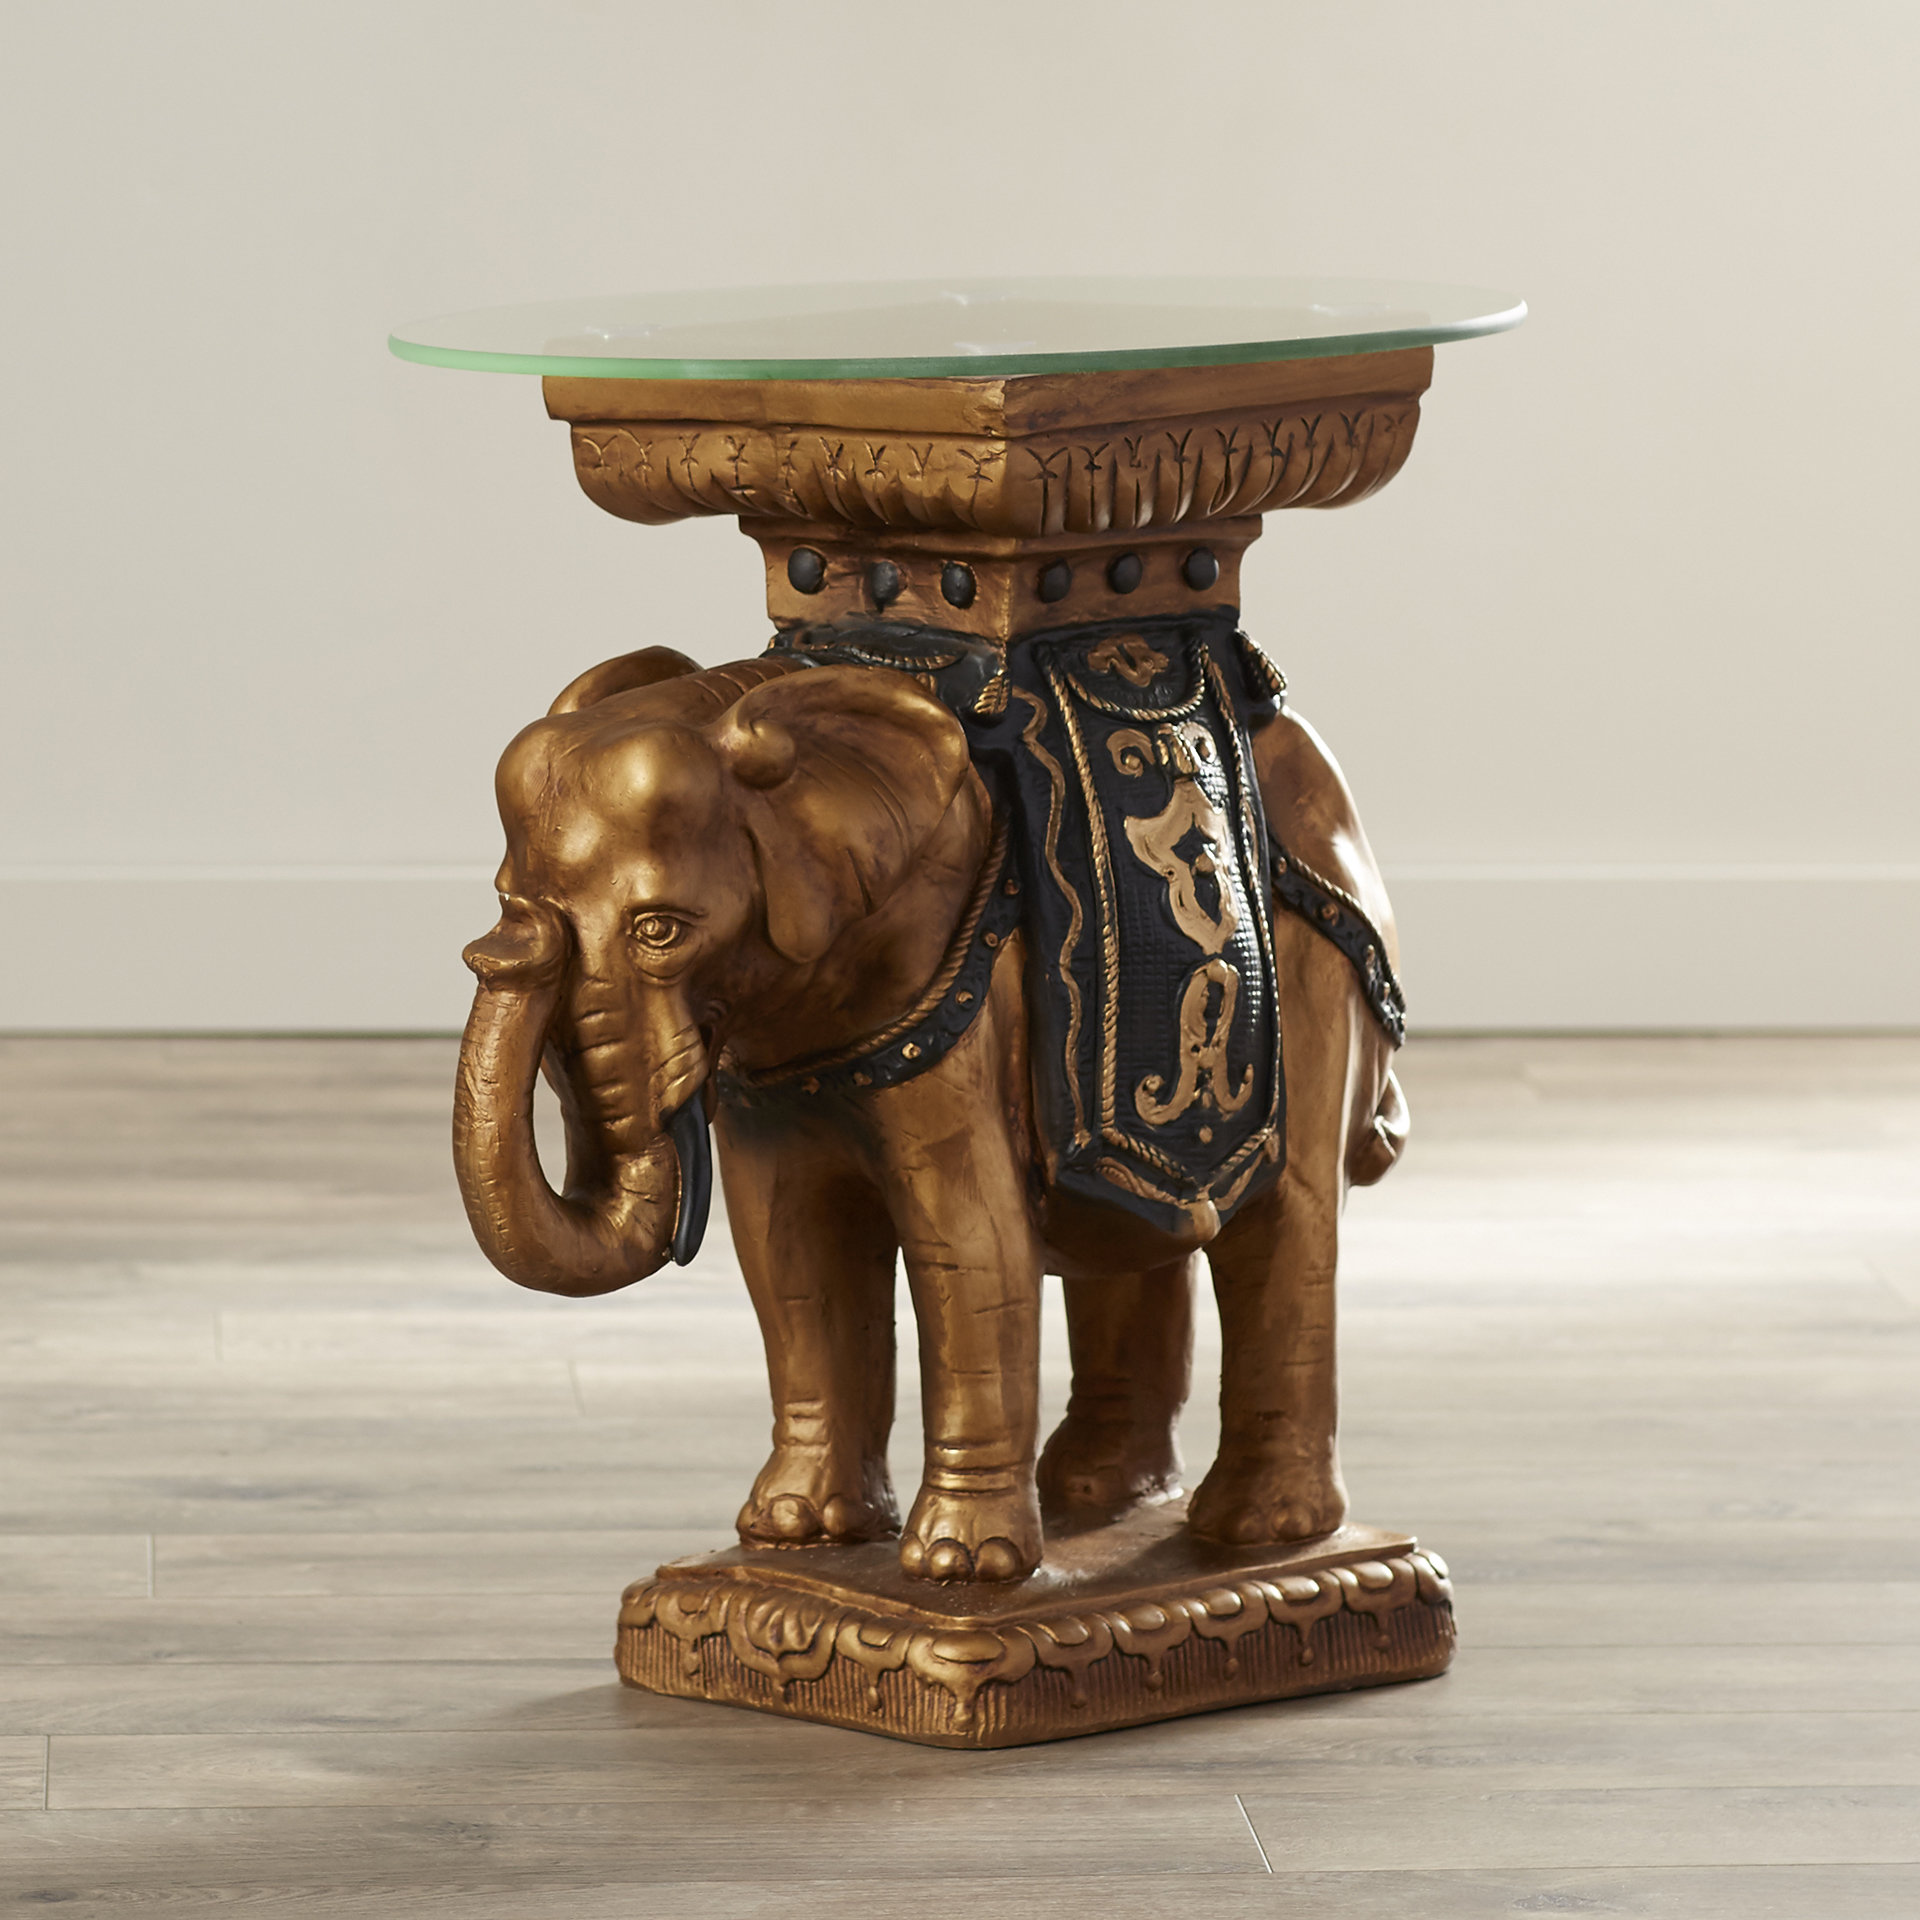 butler statue table maura crystal sculptural end elephant accent drop leaf kitchen small circular tablecloths mosaic side round rattan furniture lighting portland black and white